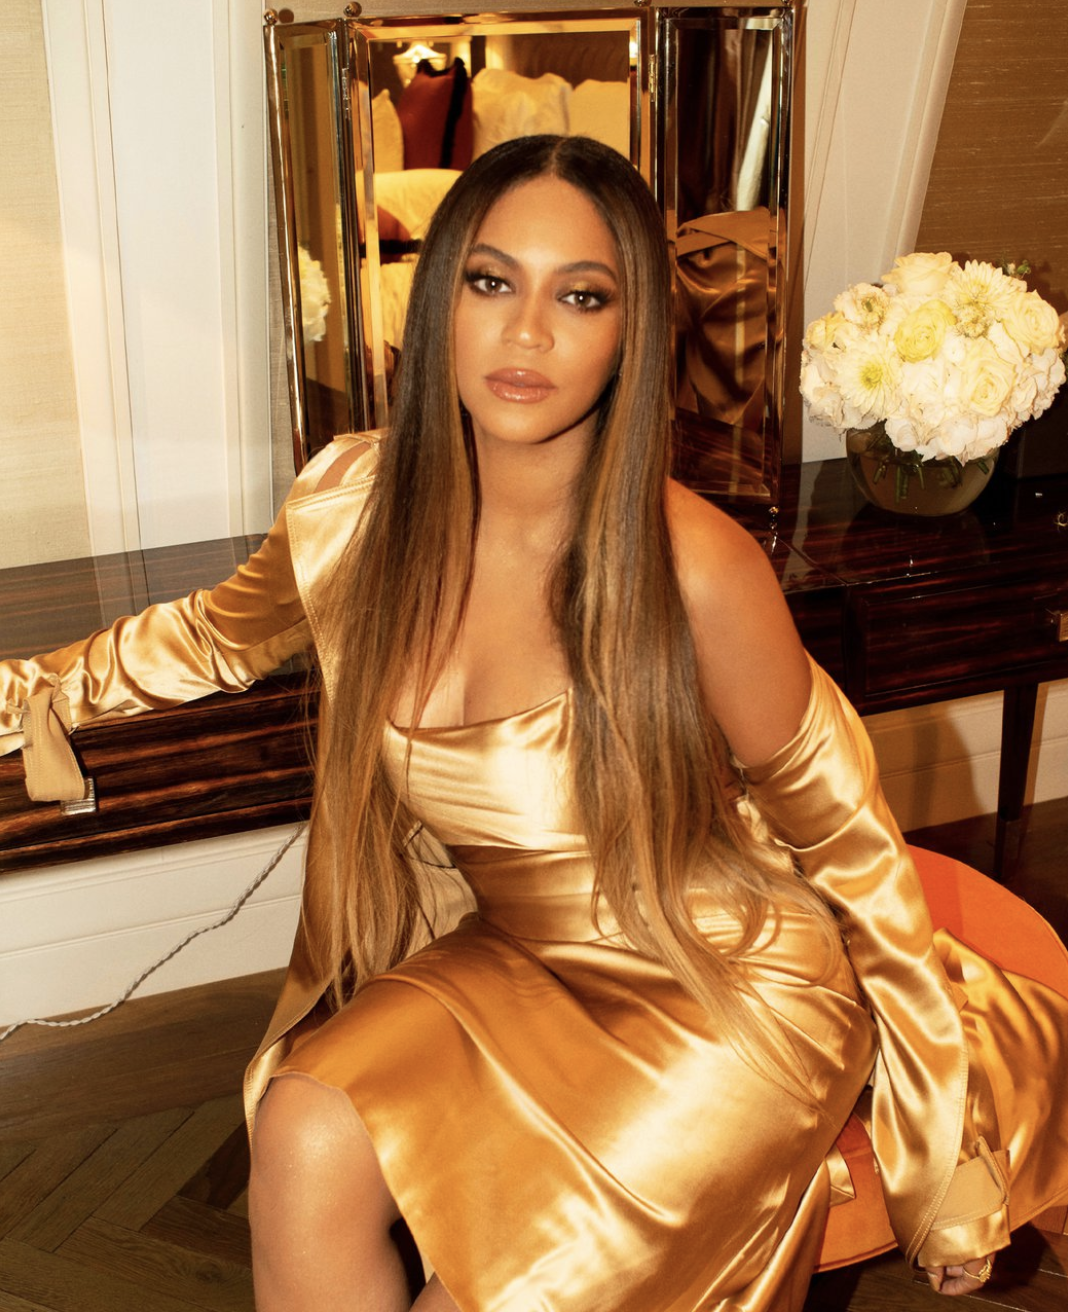 Beyoncé Posted Personal Photos of Her Meghan Markle Meeting and 'Lion King' After Party Dress